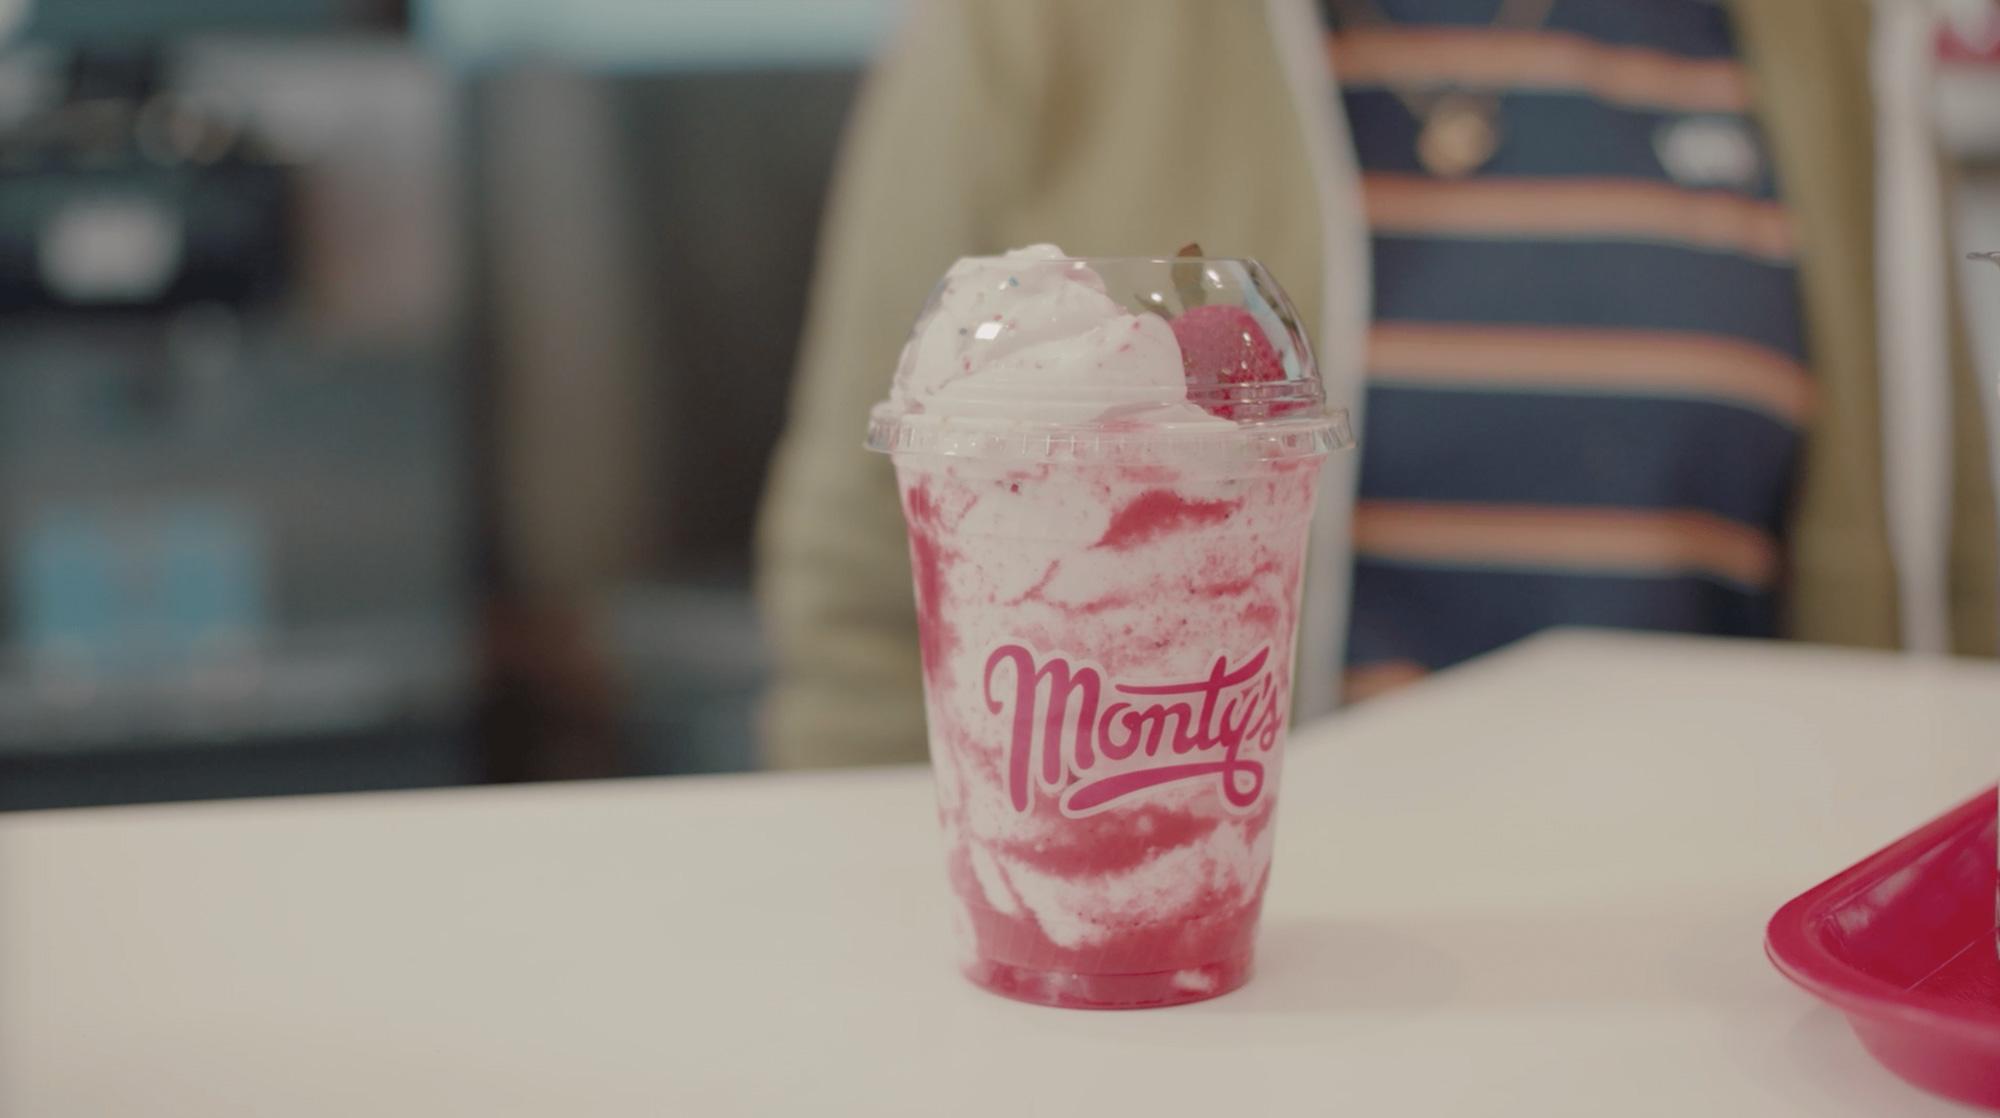 A strawberry shake from Monty's Good Burger.